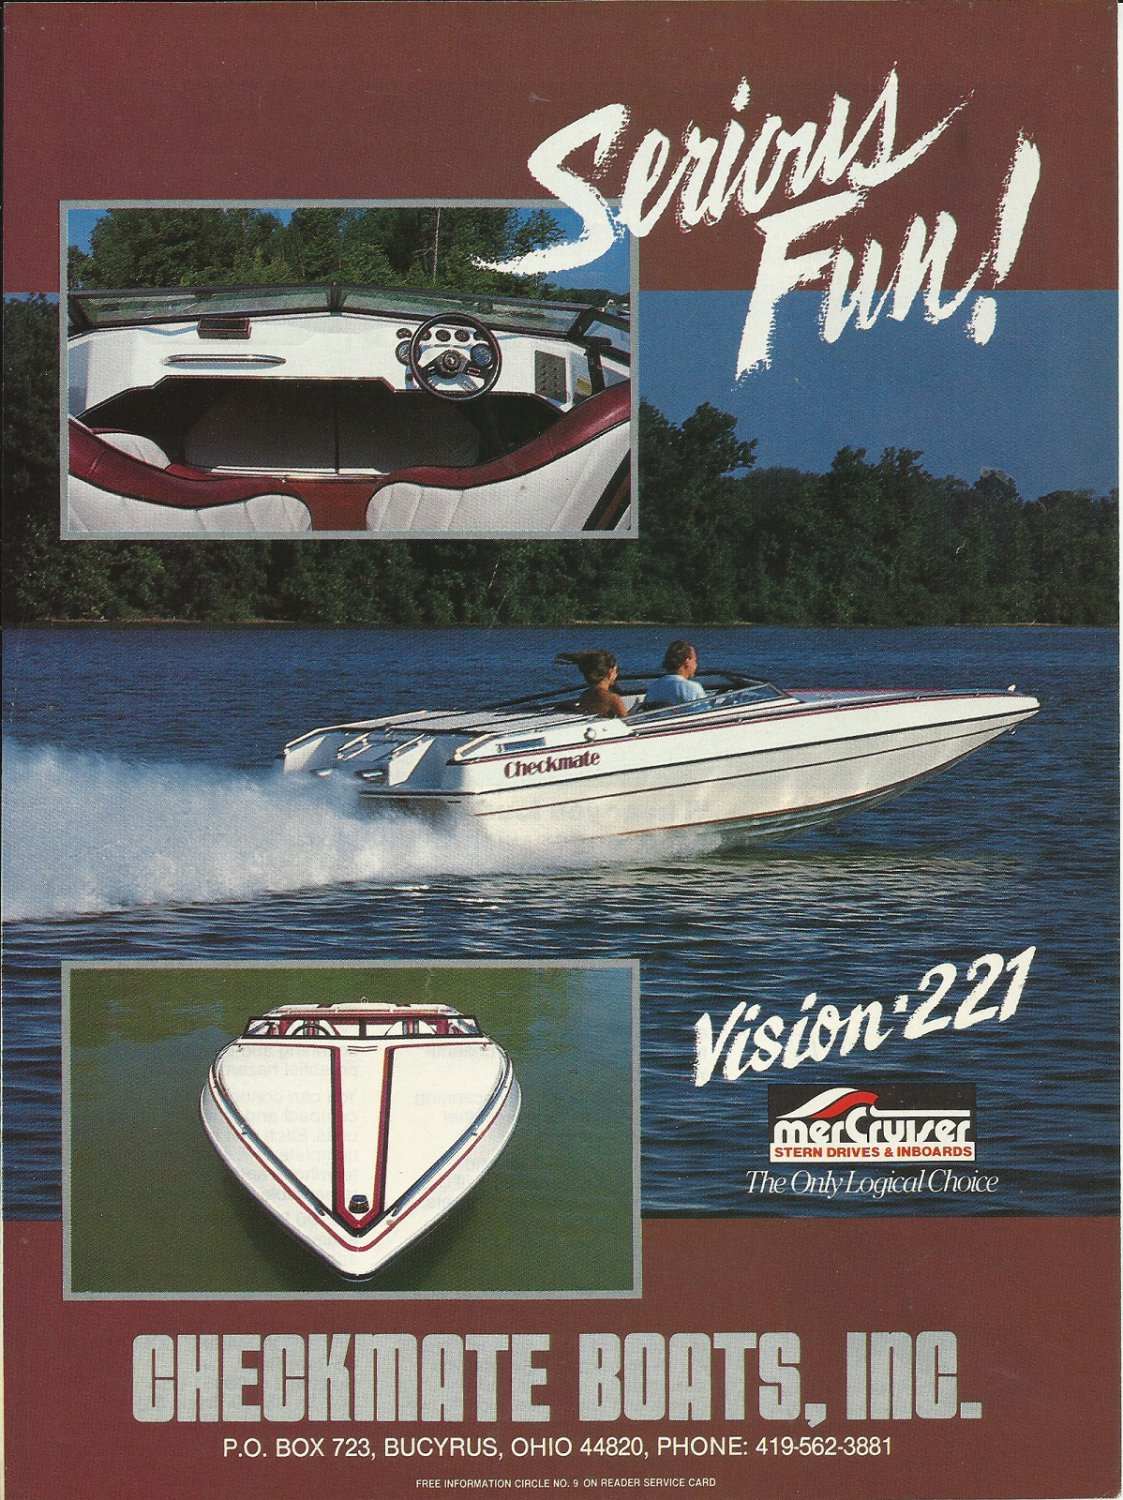 1989 Checkmate Boats Color Ad- The Vision 221